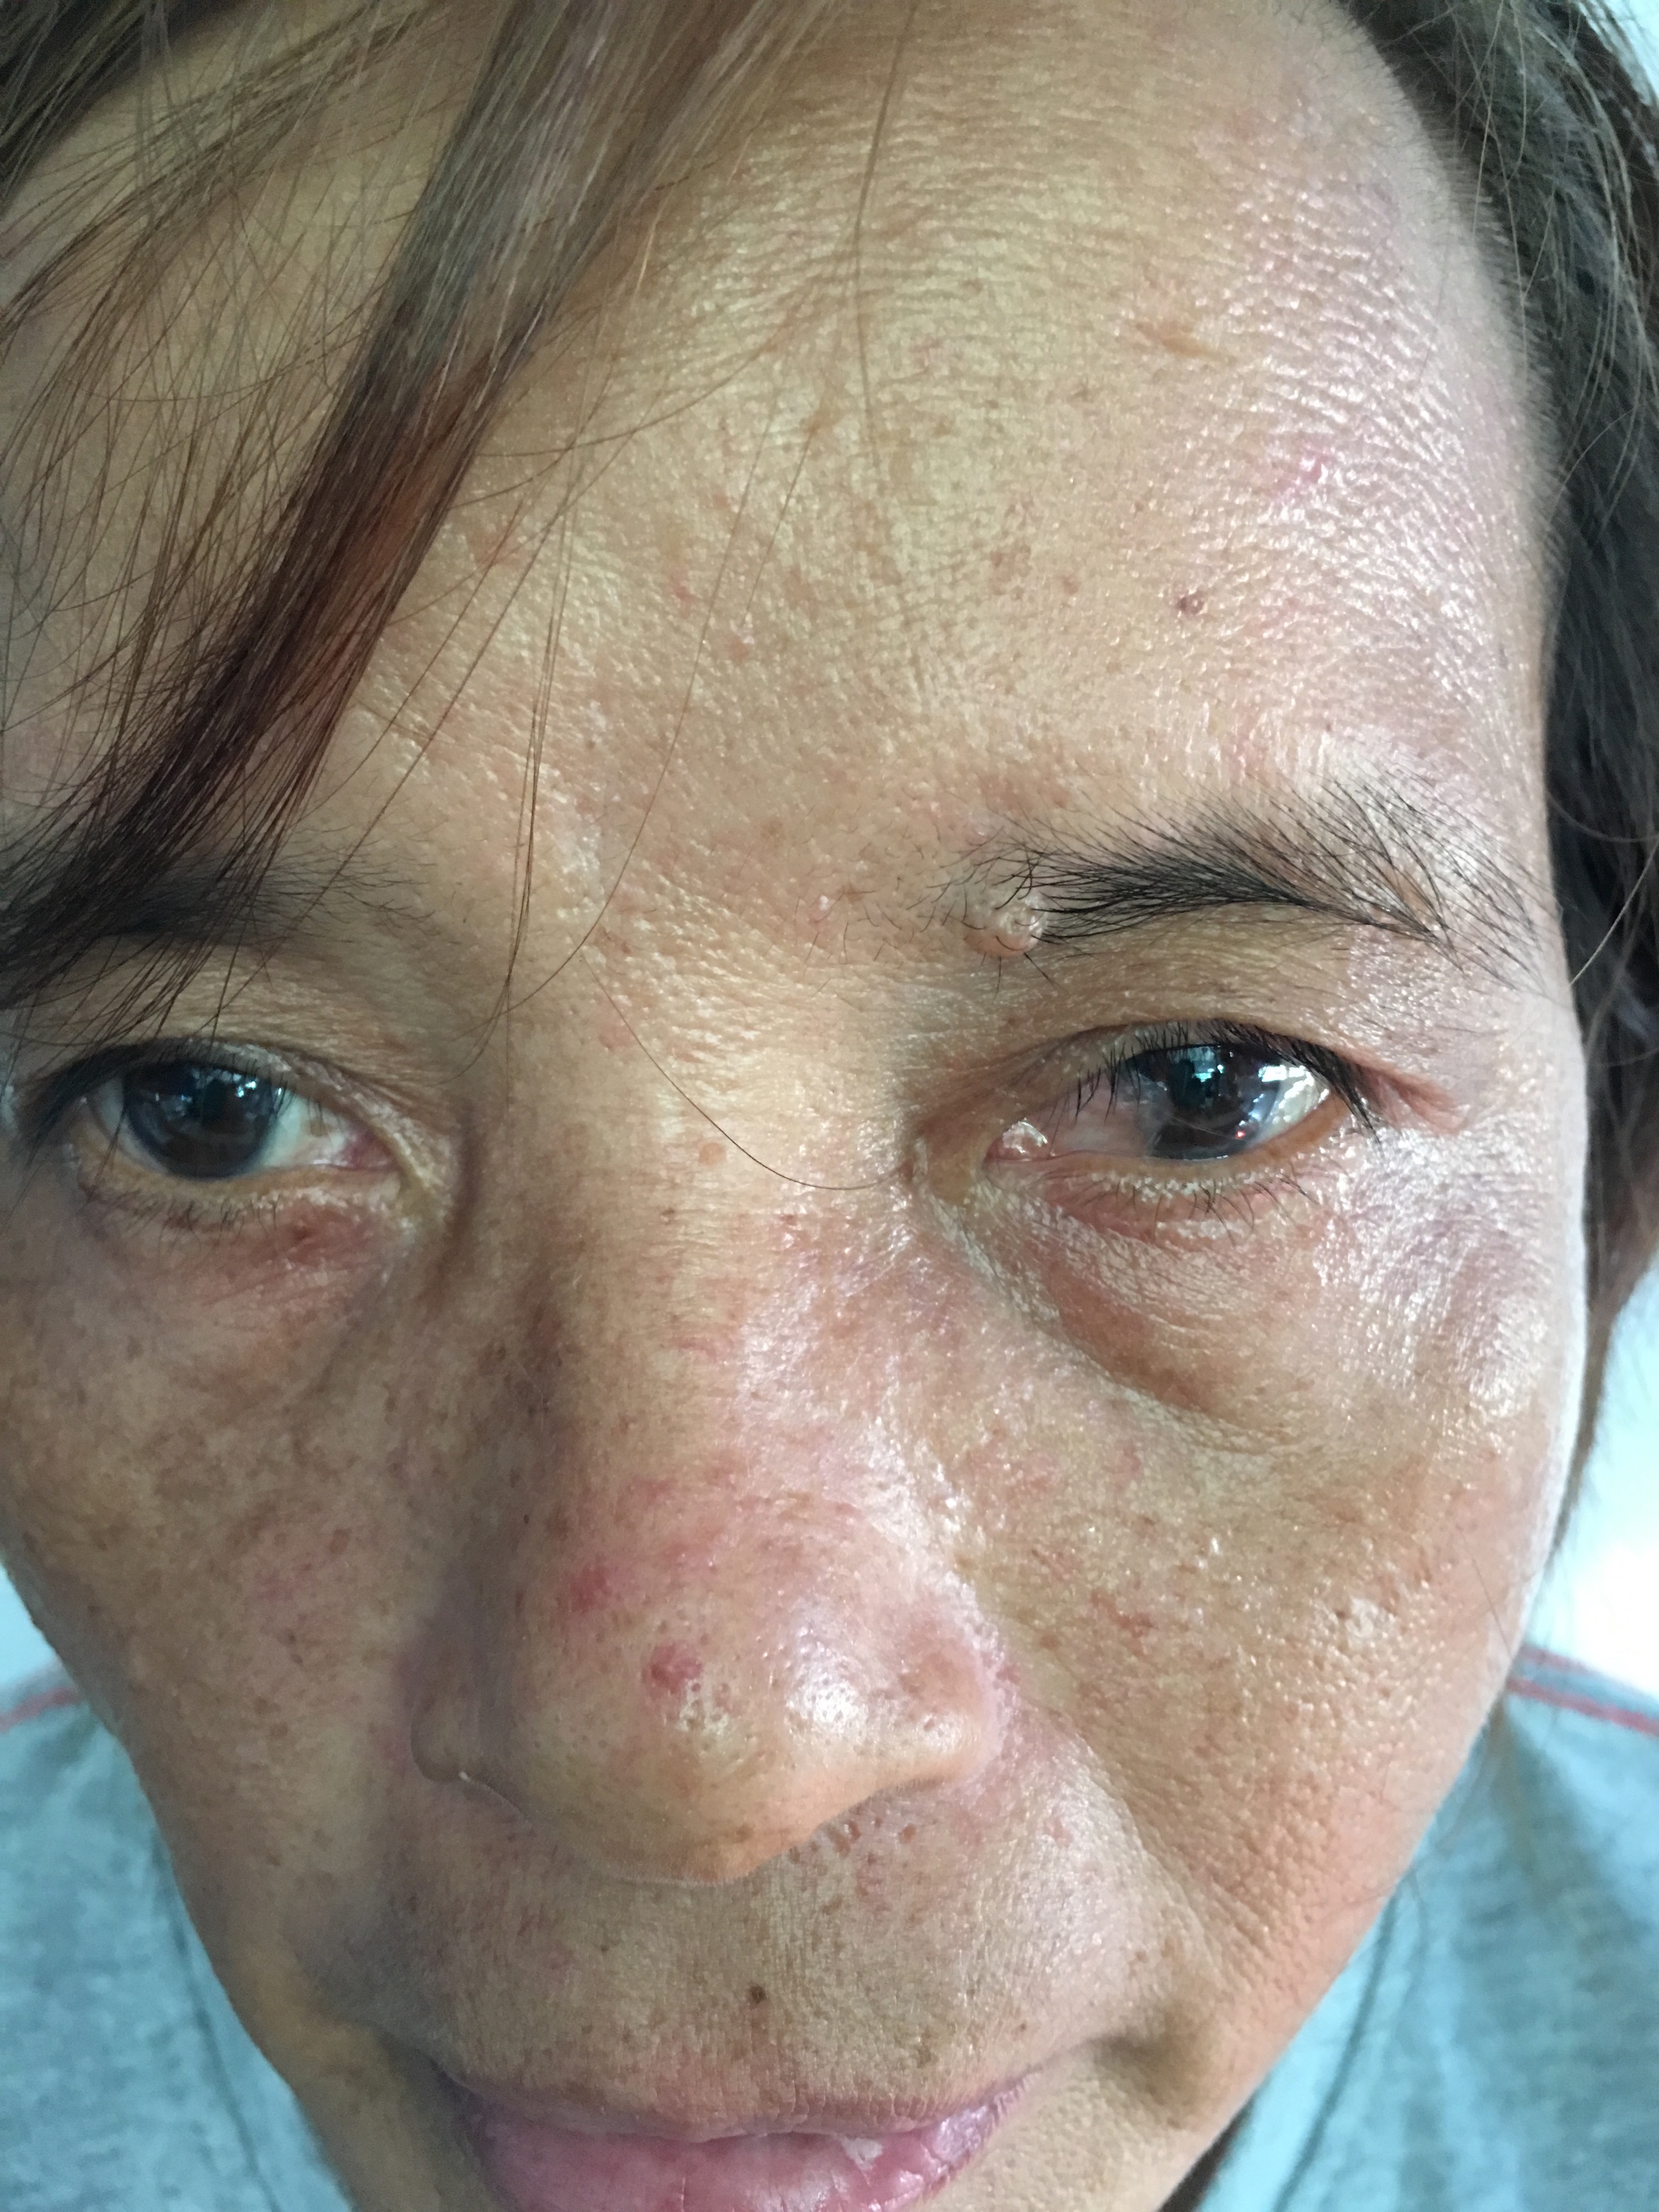 This woman was losing her vision due to pterygium growth over her left eye due to exposure to wind, sun and dust.  She was scheduled to have it removed.  Once removed, she will regain normal vision.